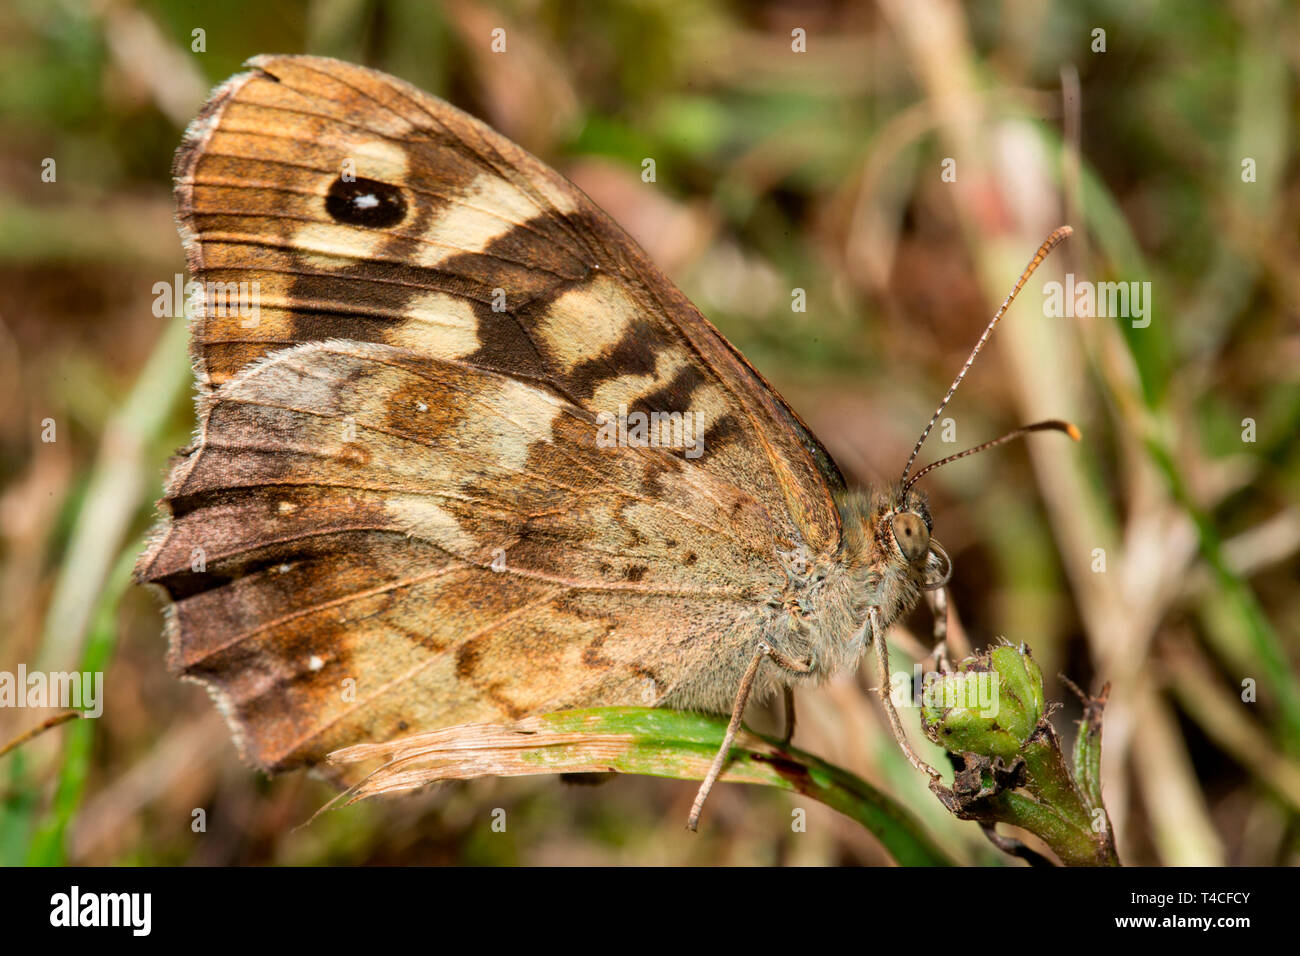 speckled wood, (Pararge aegeria) - Stock Image